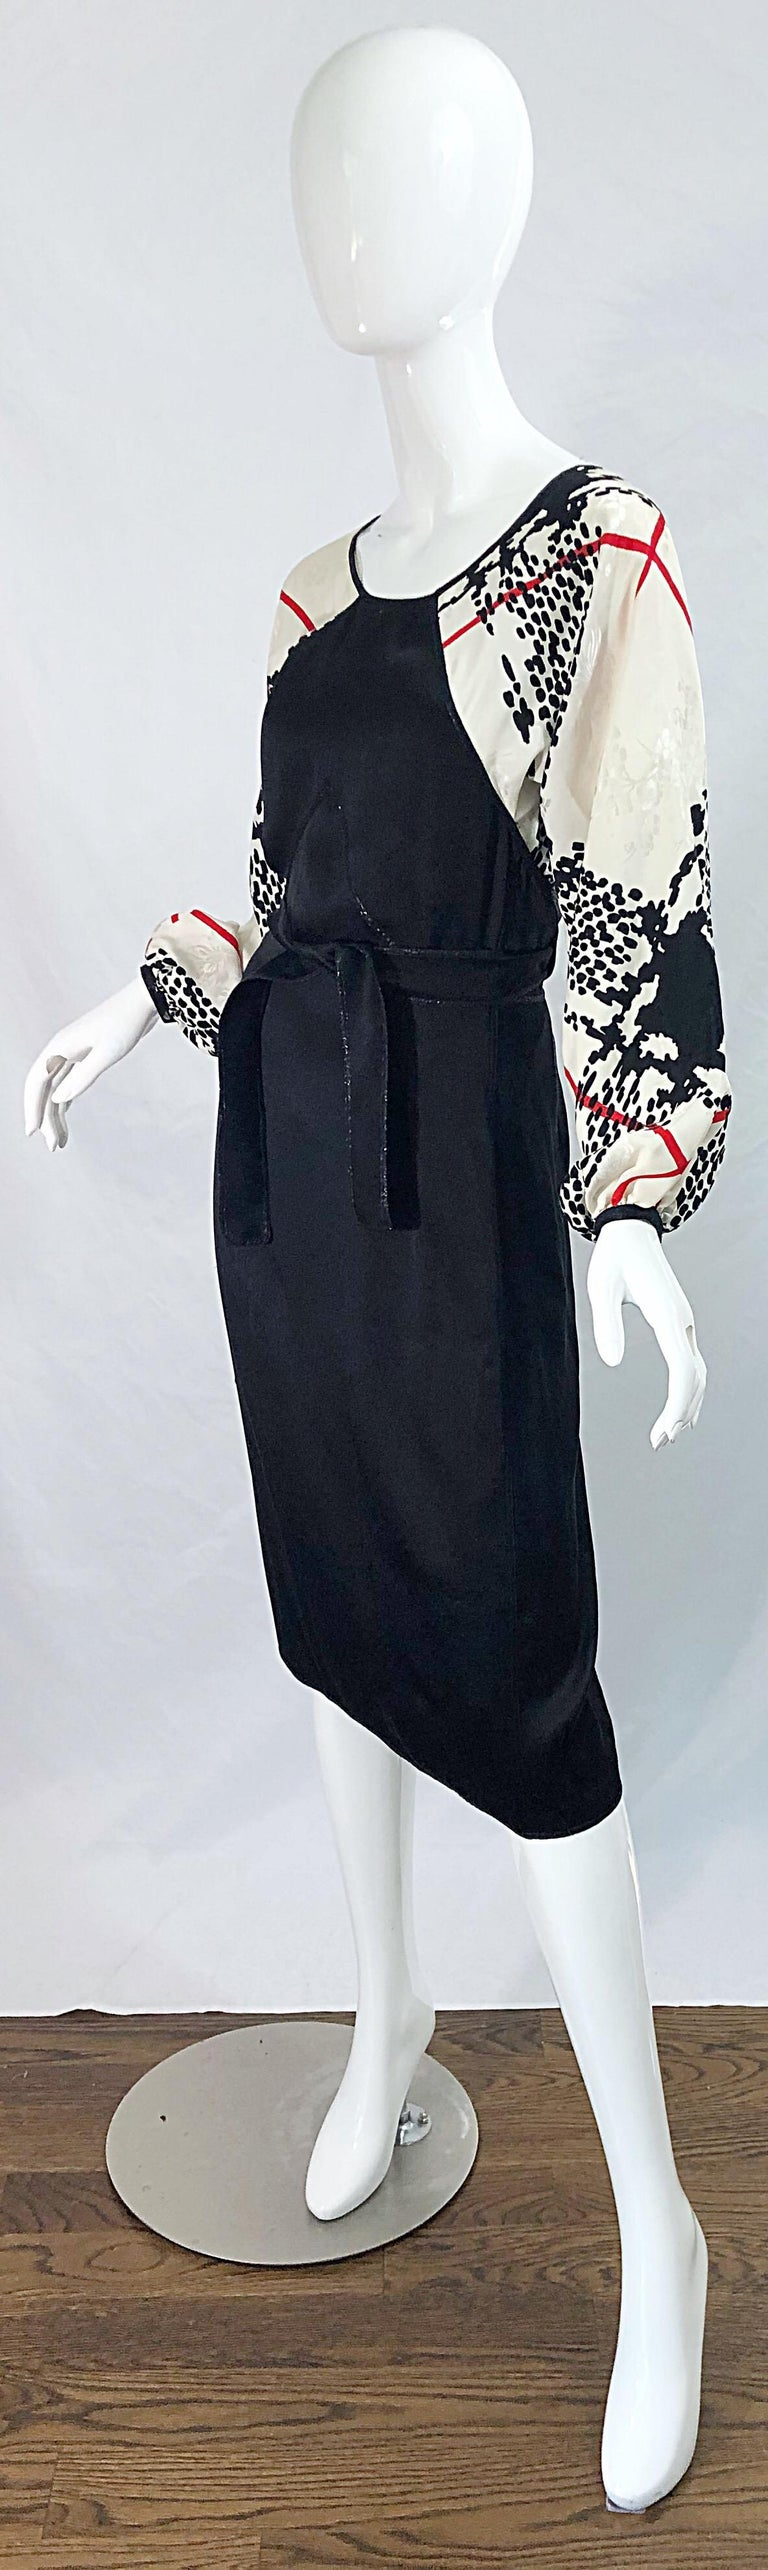 Vintage Geoffrey Beene Size 6 Houndstooth Black + White + Red Silk 80s Dress For Sale 2